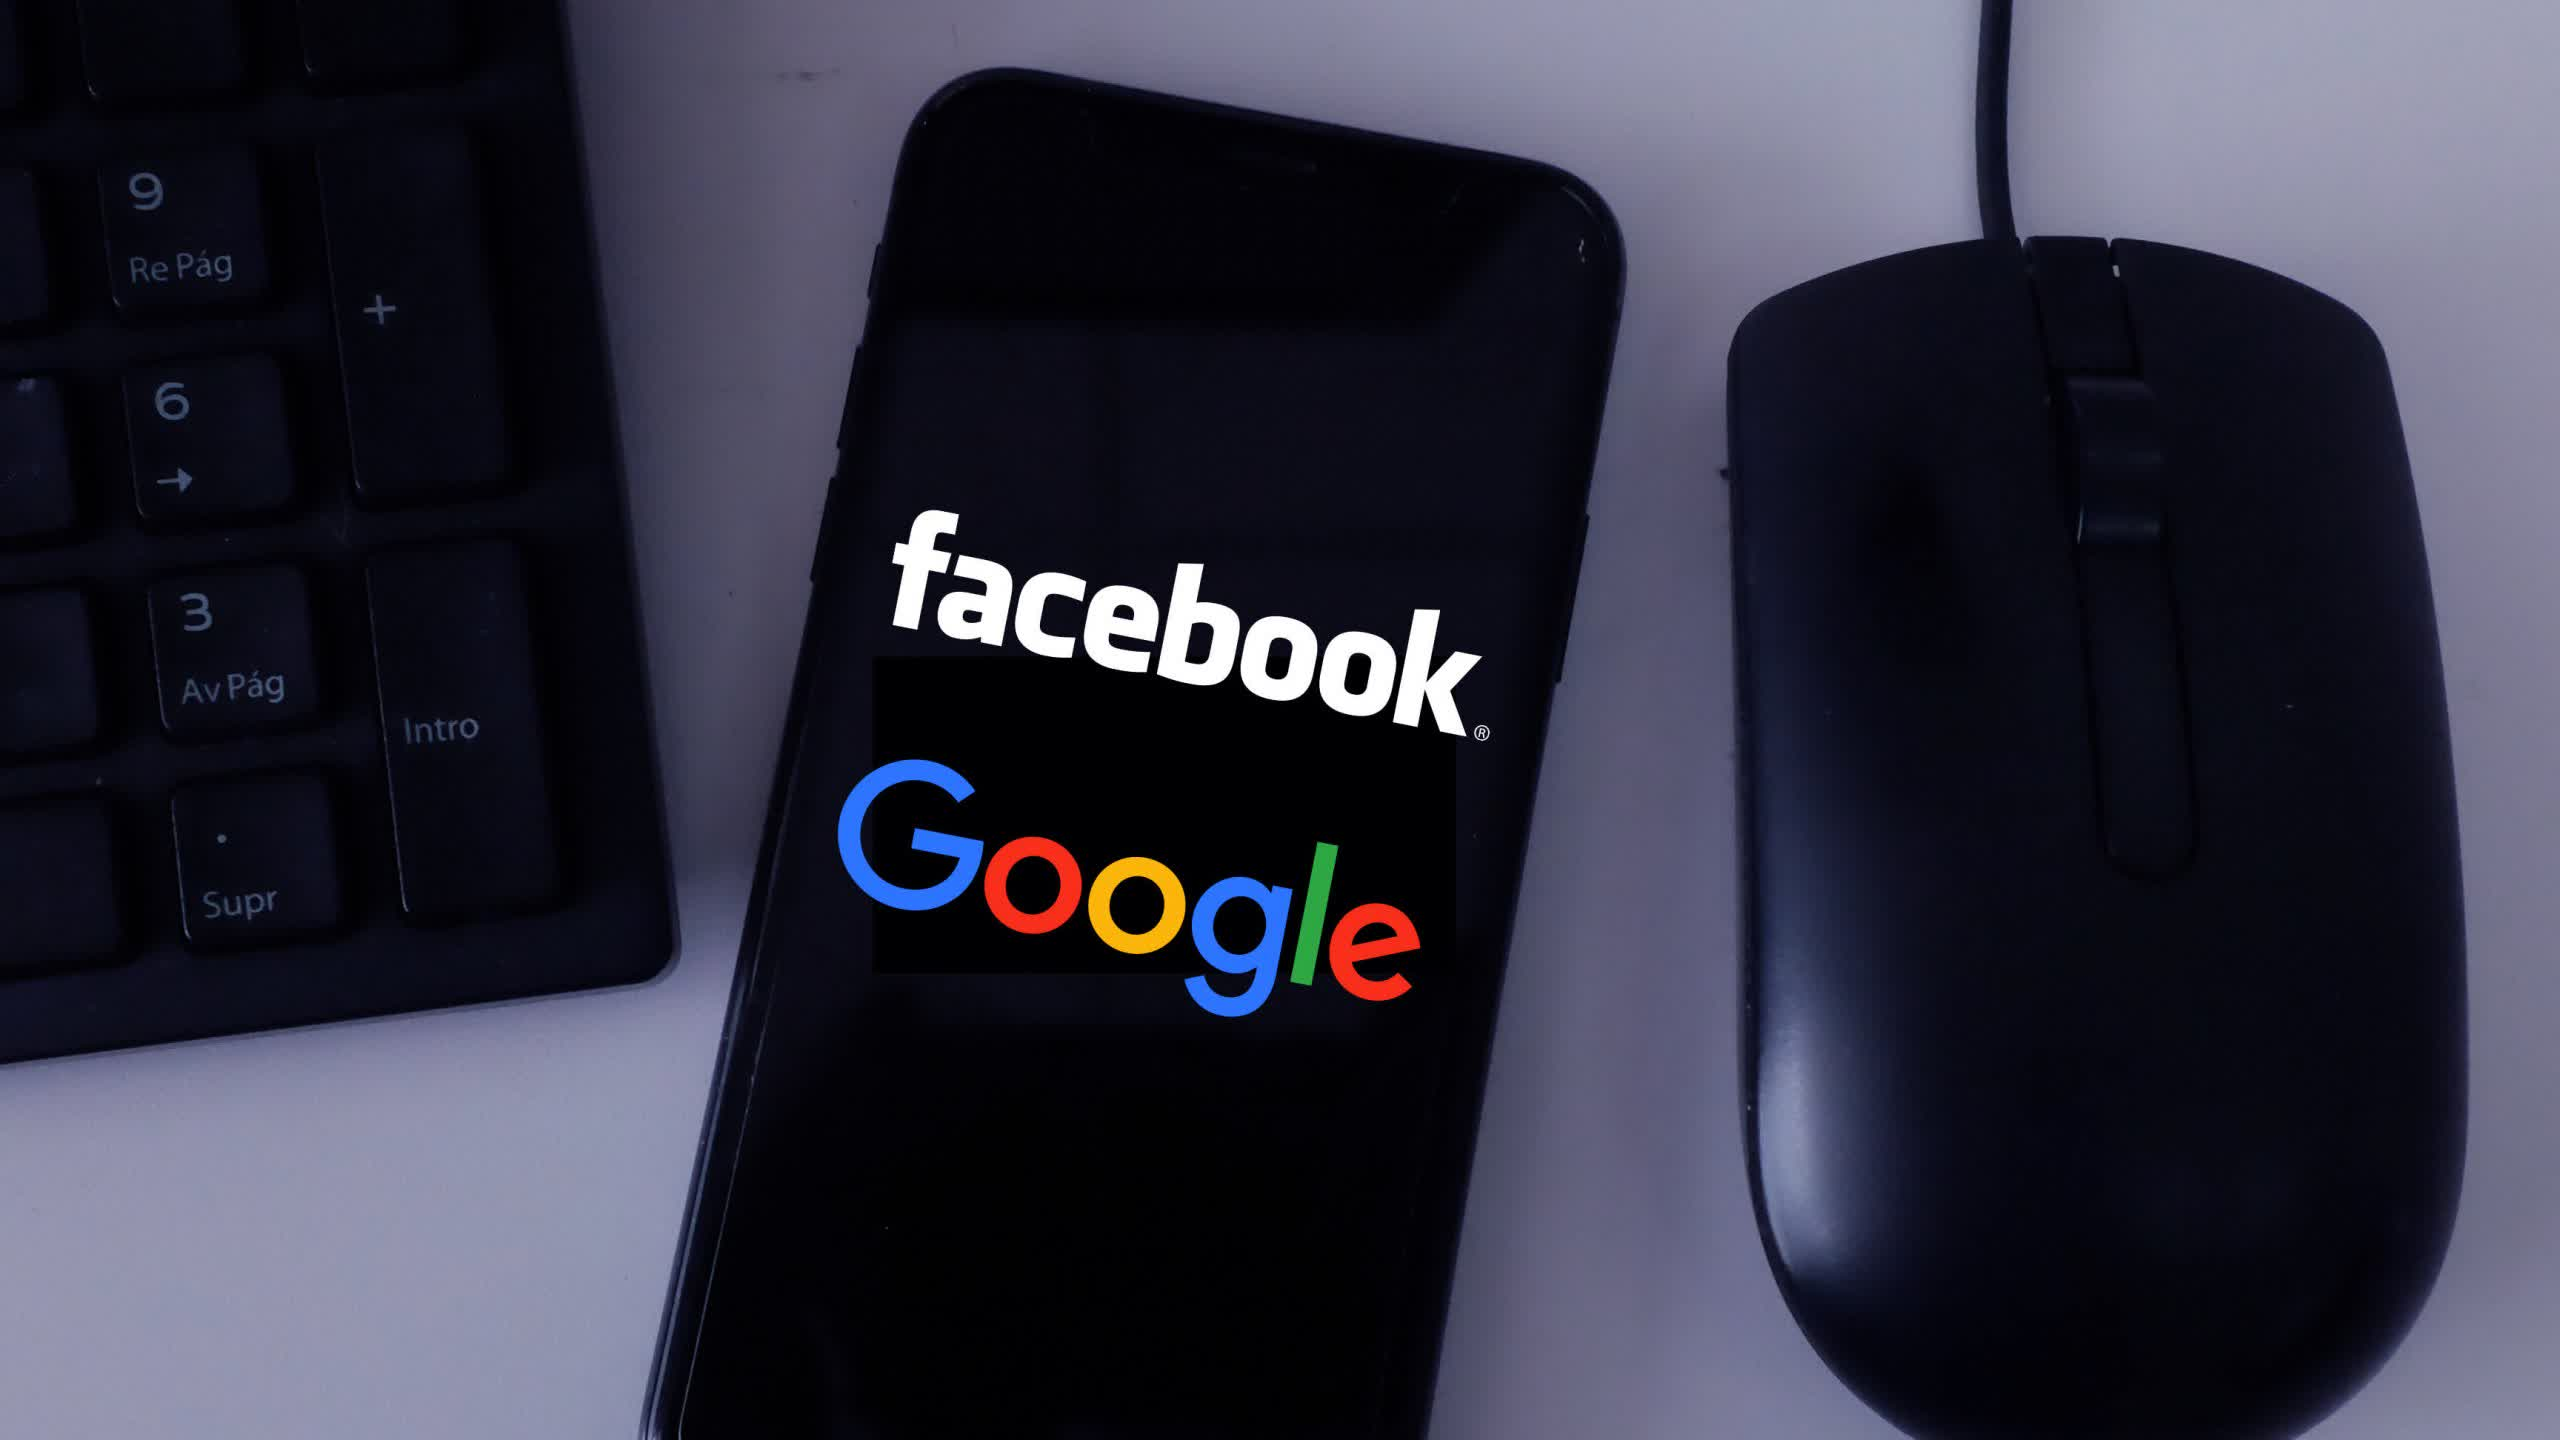 Texas AG outs Google for tilting advertising scales in Facebook's favor